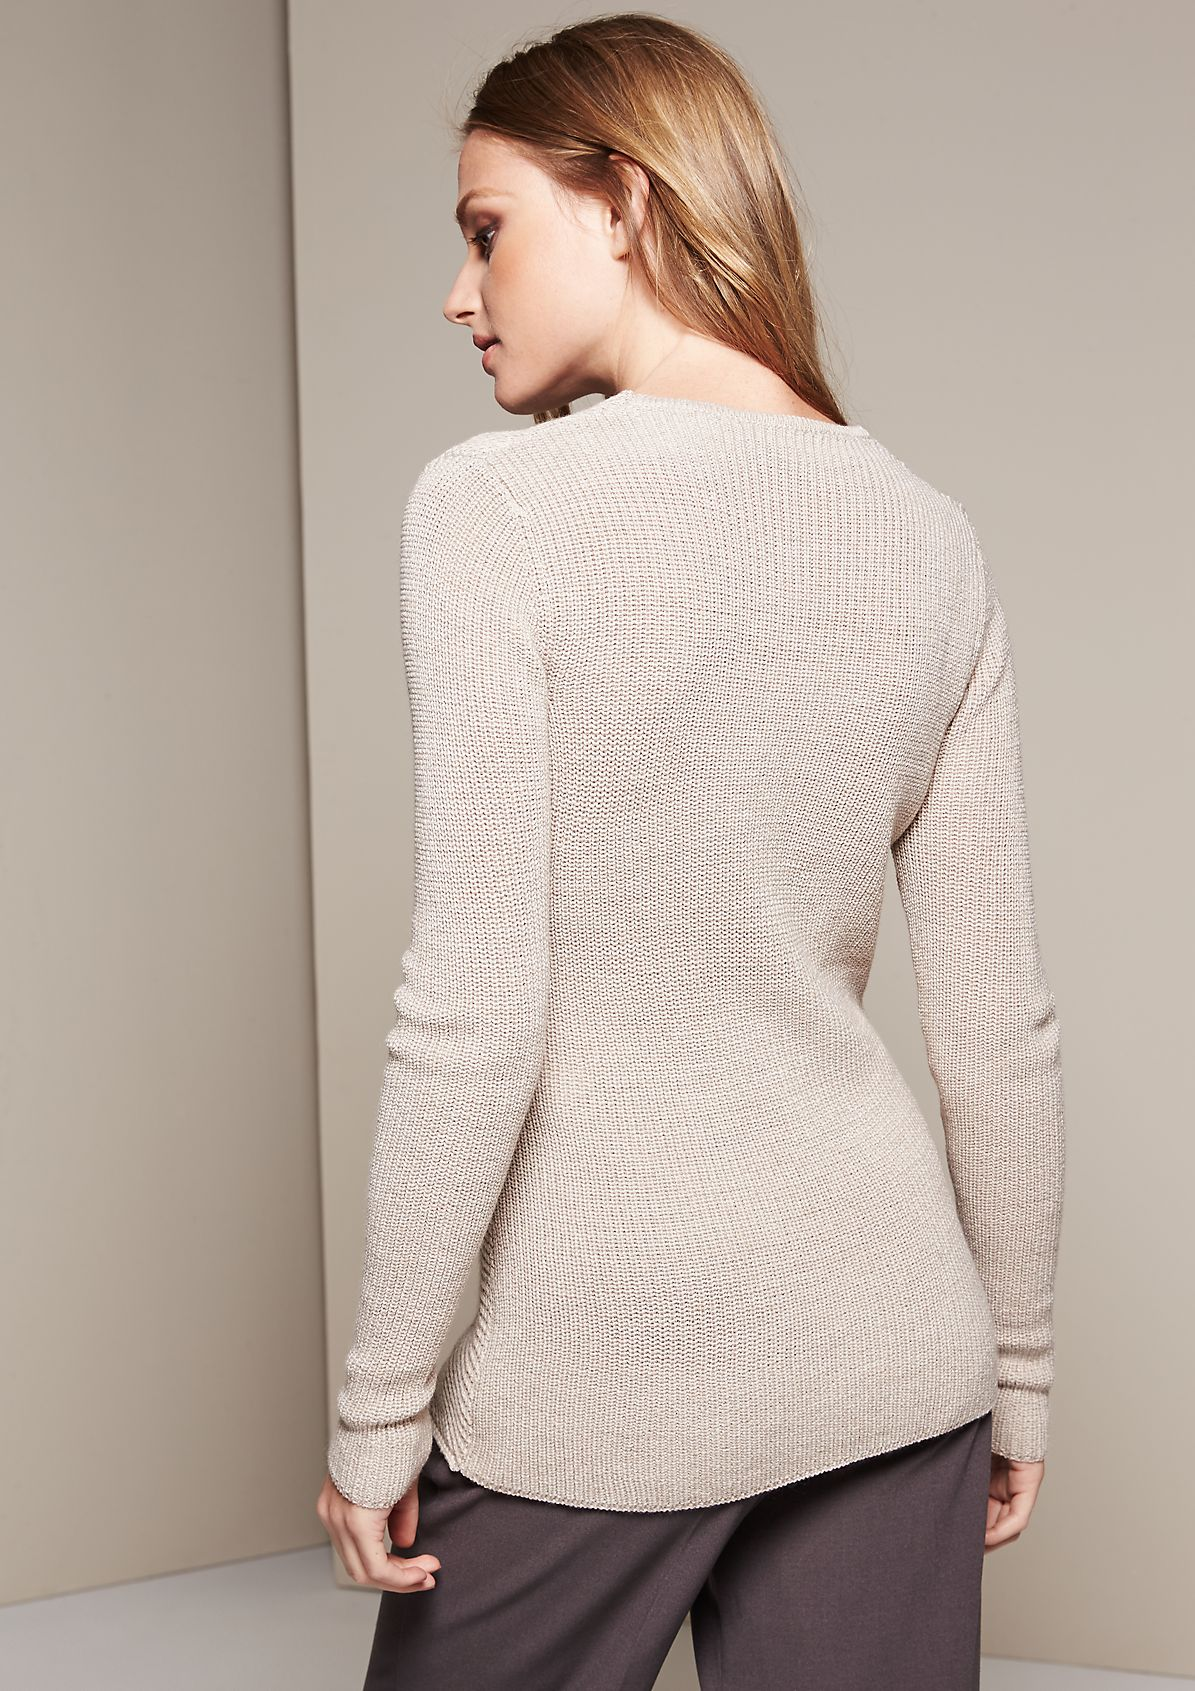 Feminine knit jumper with a beautiful pattern from s.Oliver